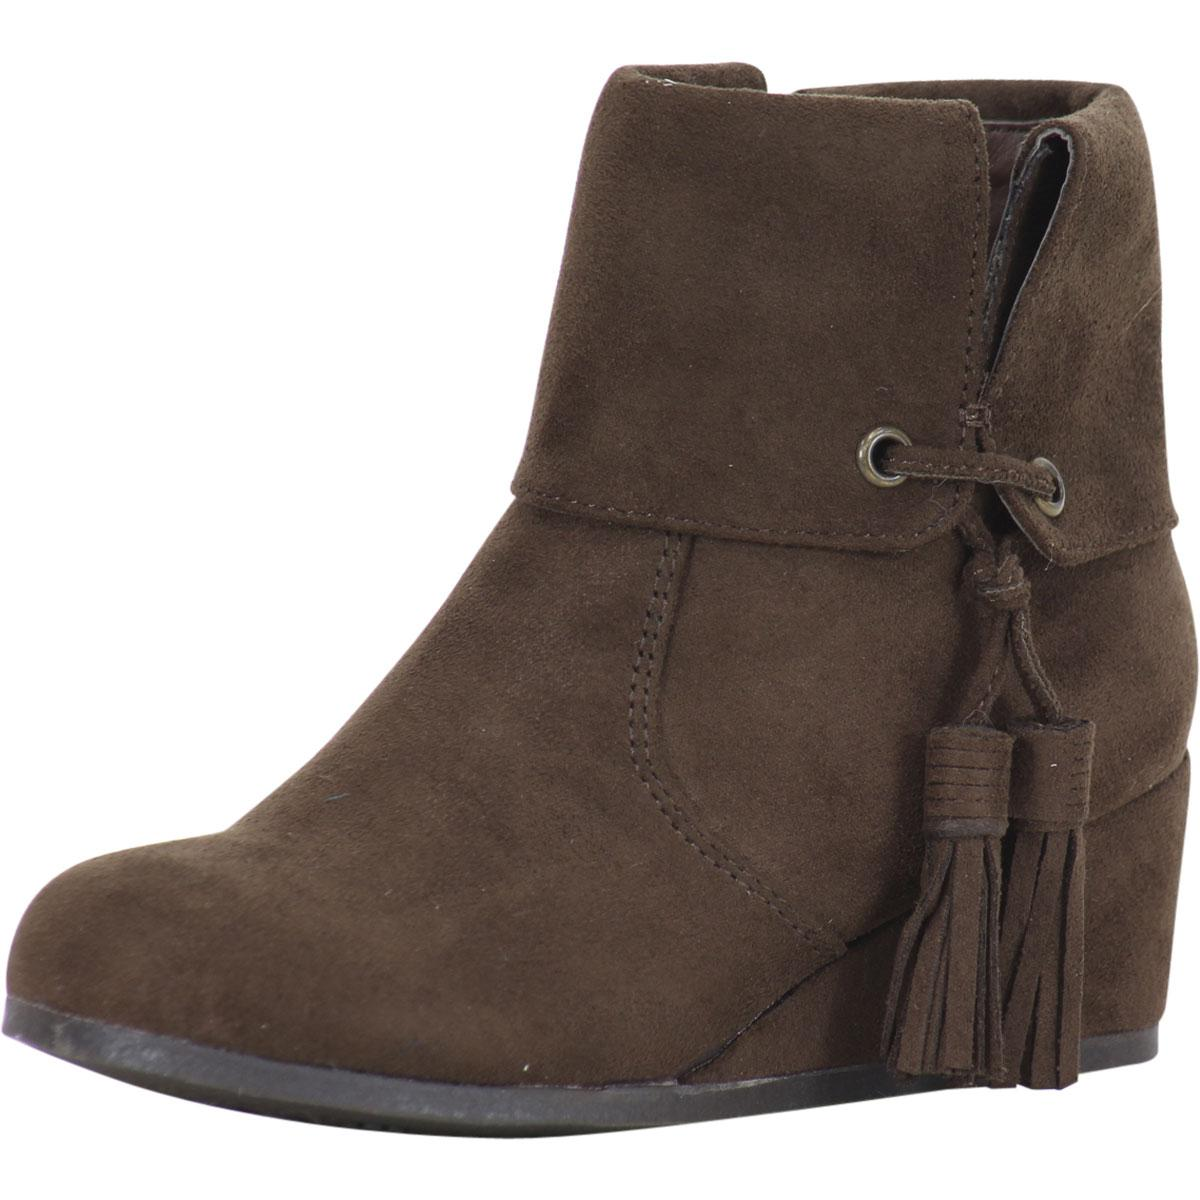 Image of Sugar Little/Big Girl's BonBon Wedge Heel Ankle Boots Shoes - Chocolate - 2 M US Little Kid